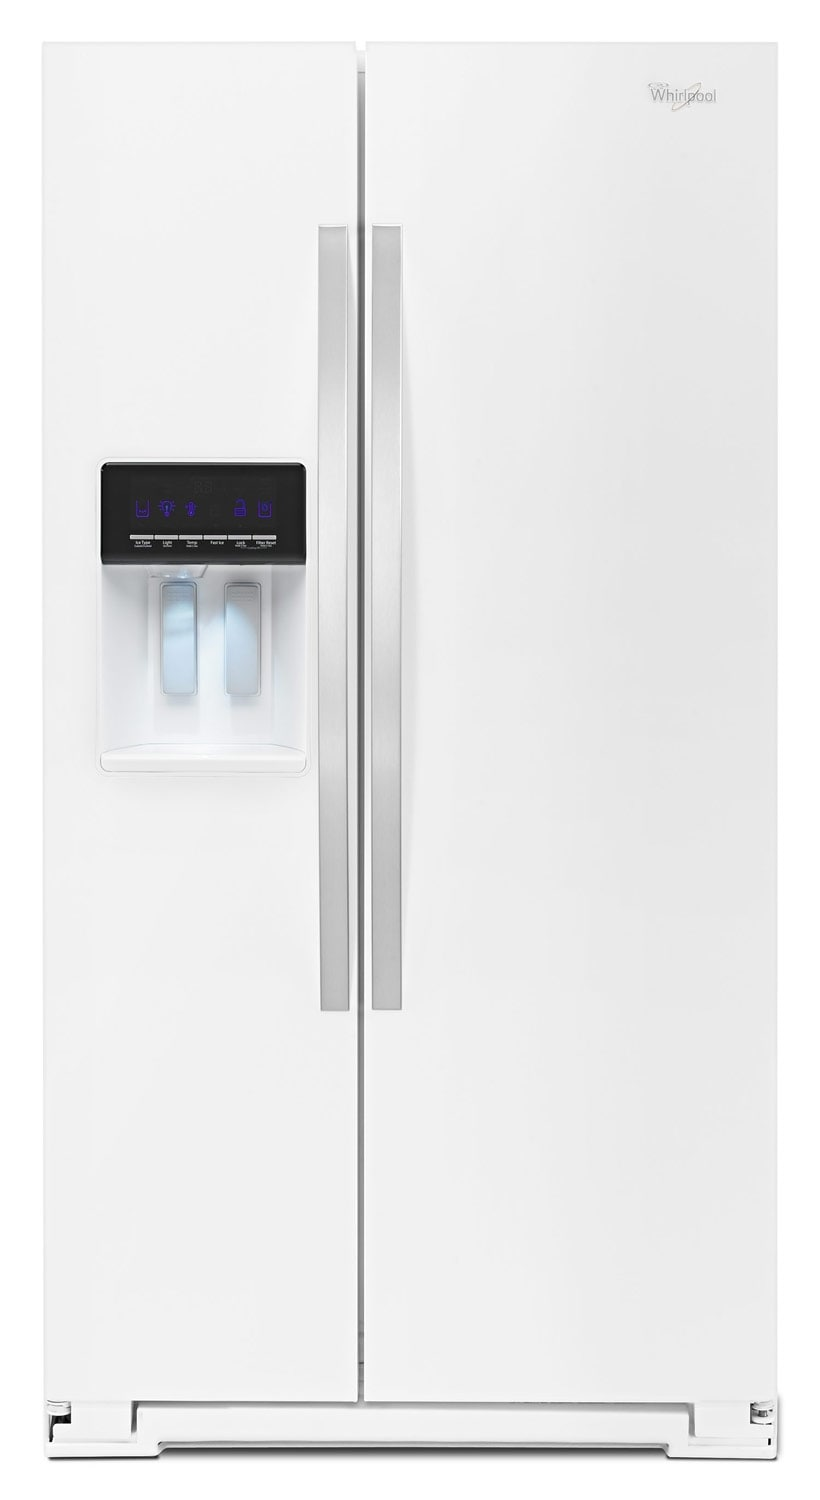 whirlpool white side by side refrigerator 25 6 cu ft wrs586fieh leon 39 s. Black Bedroom Furniture Sets. Home Design Ideas